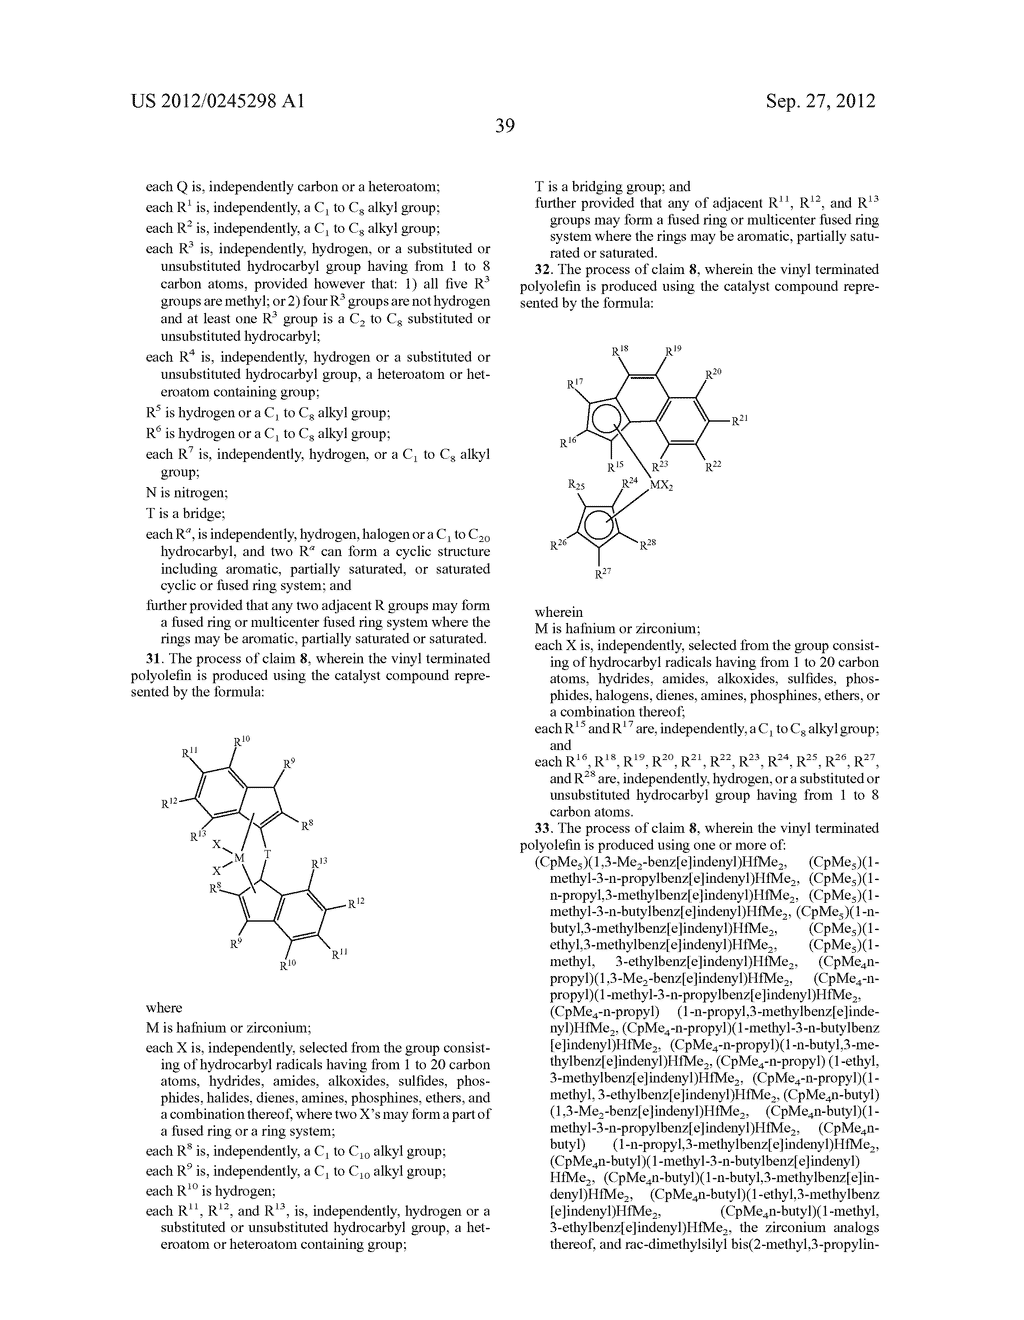 Amphiphilic Block Polymers Prepared by Alkene Metathesis - diagram, schematic, and image 40